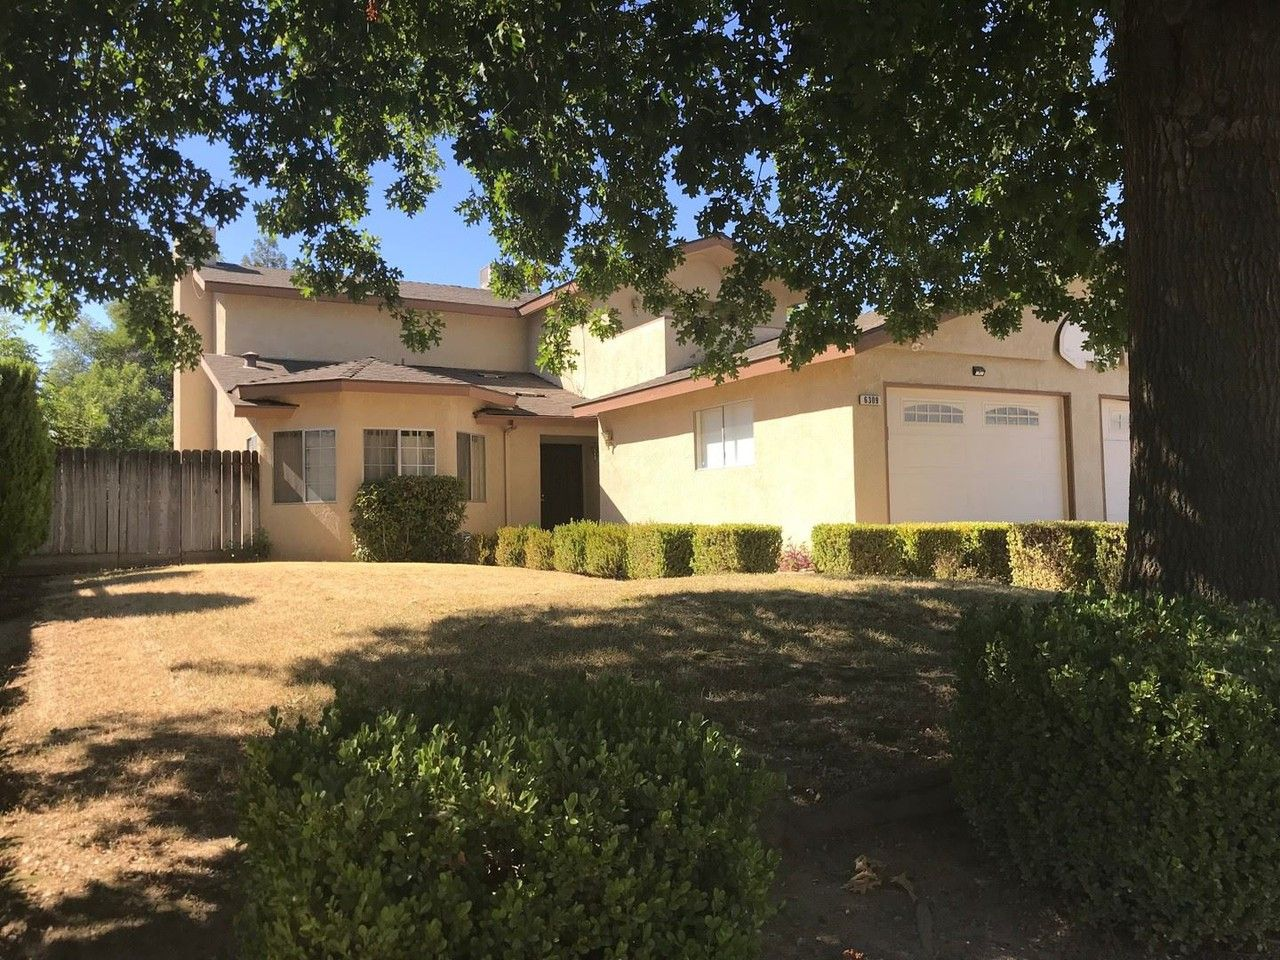 6309 N State St, Fresno, CA 93722 3 Bedroom House for Rent for